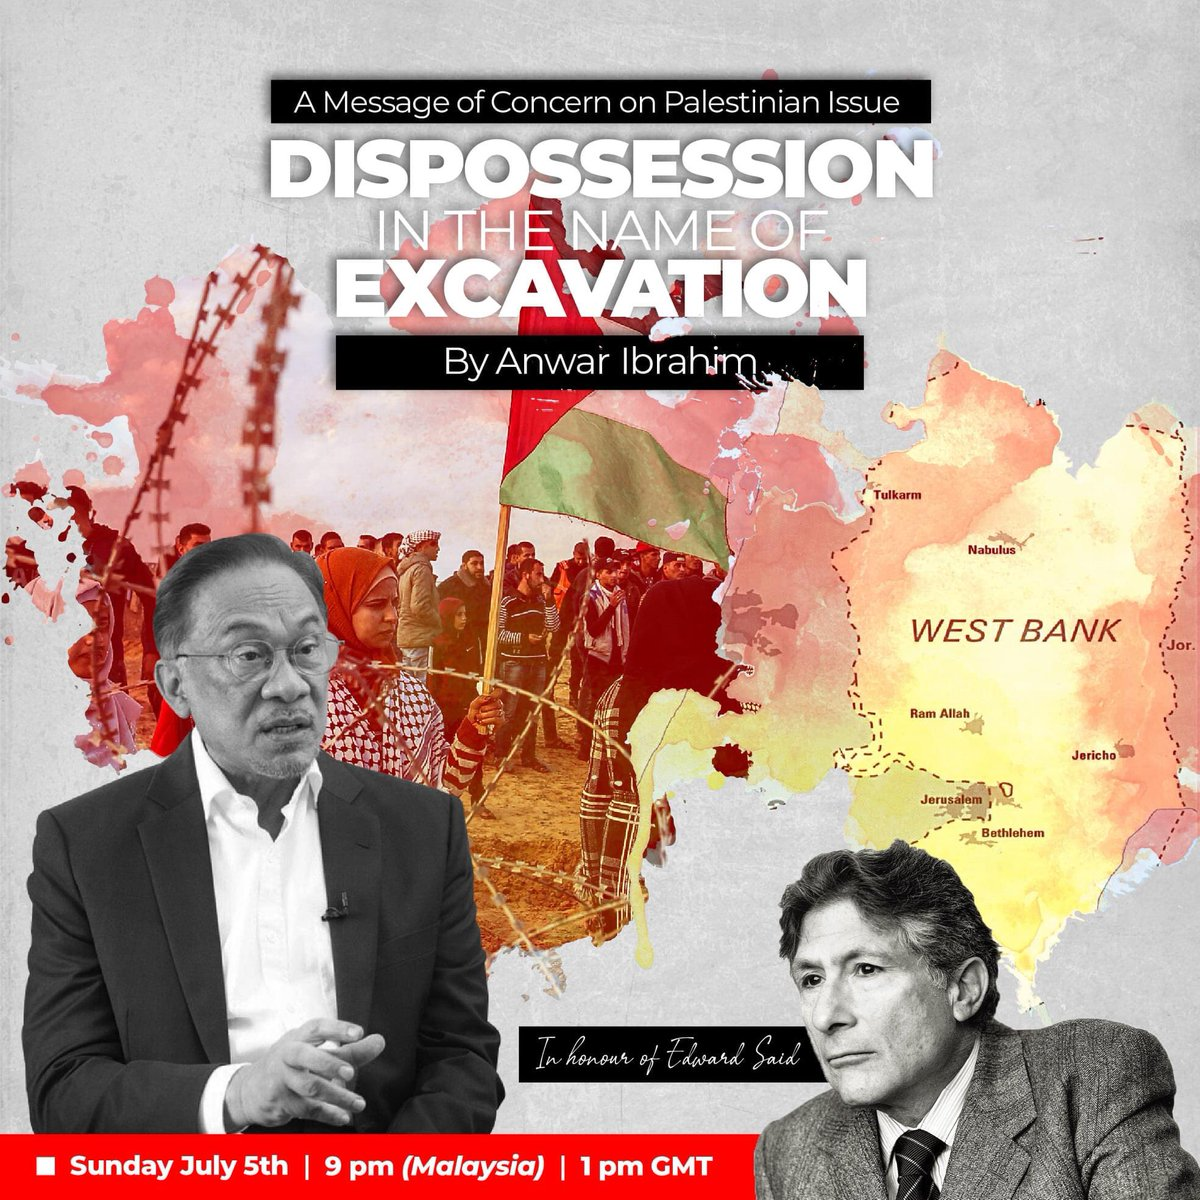 A MESSAGE OF CONCERN - ANWAR IBRAHIM  Continuous breach of human rights and unilateral decision in undermining the Palestinians' self-determination and history persist despite overwhelmed protests worldwide. https://t.co/hBLwrbuEFx